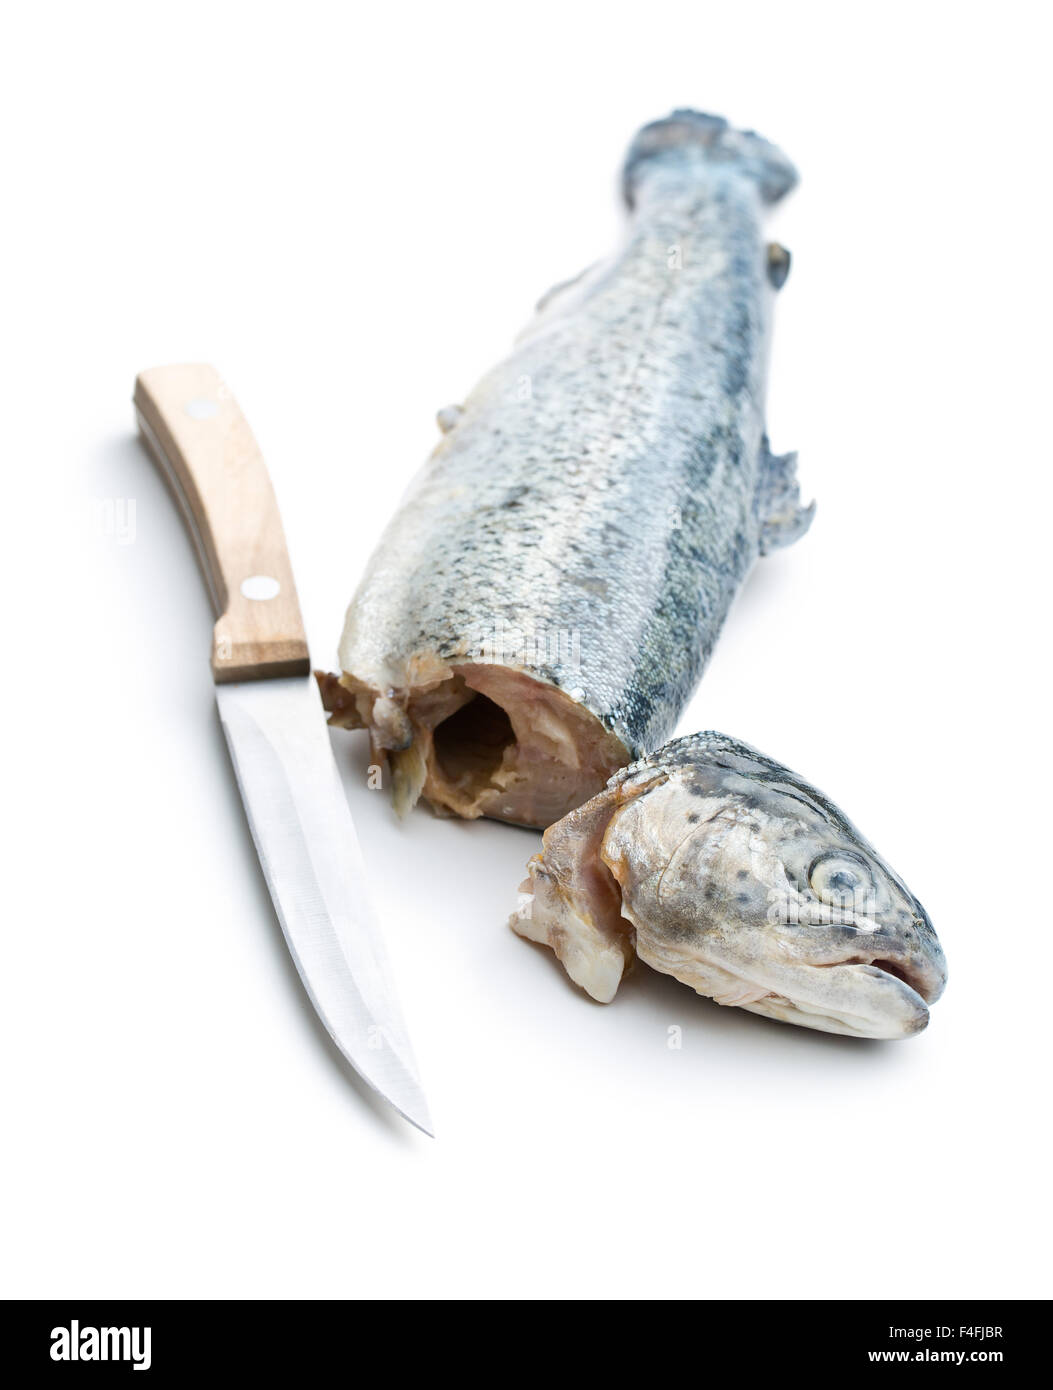 the gutted trout with knife on white background - Stock Image